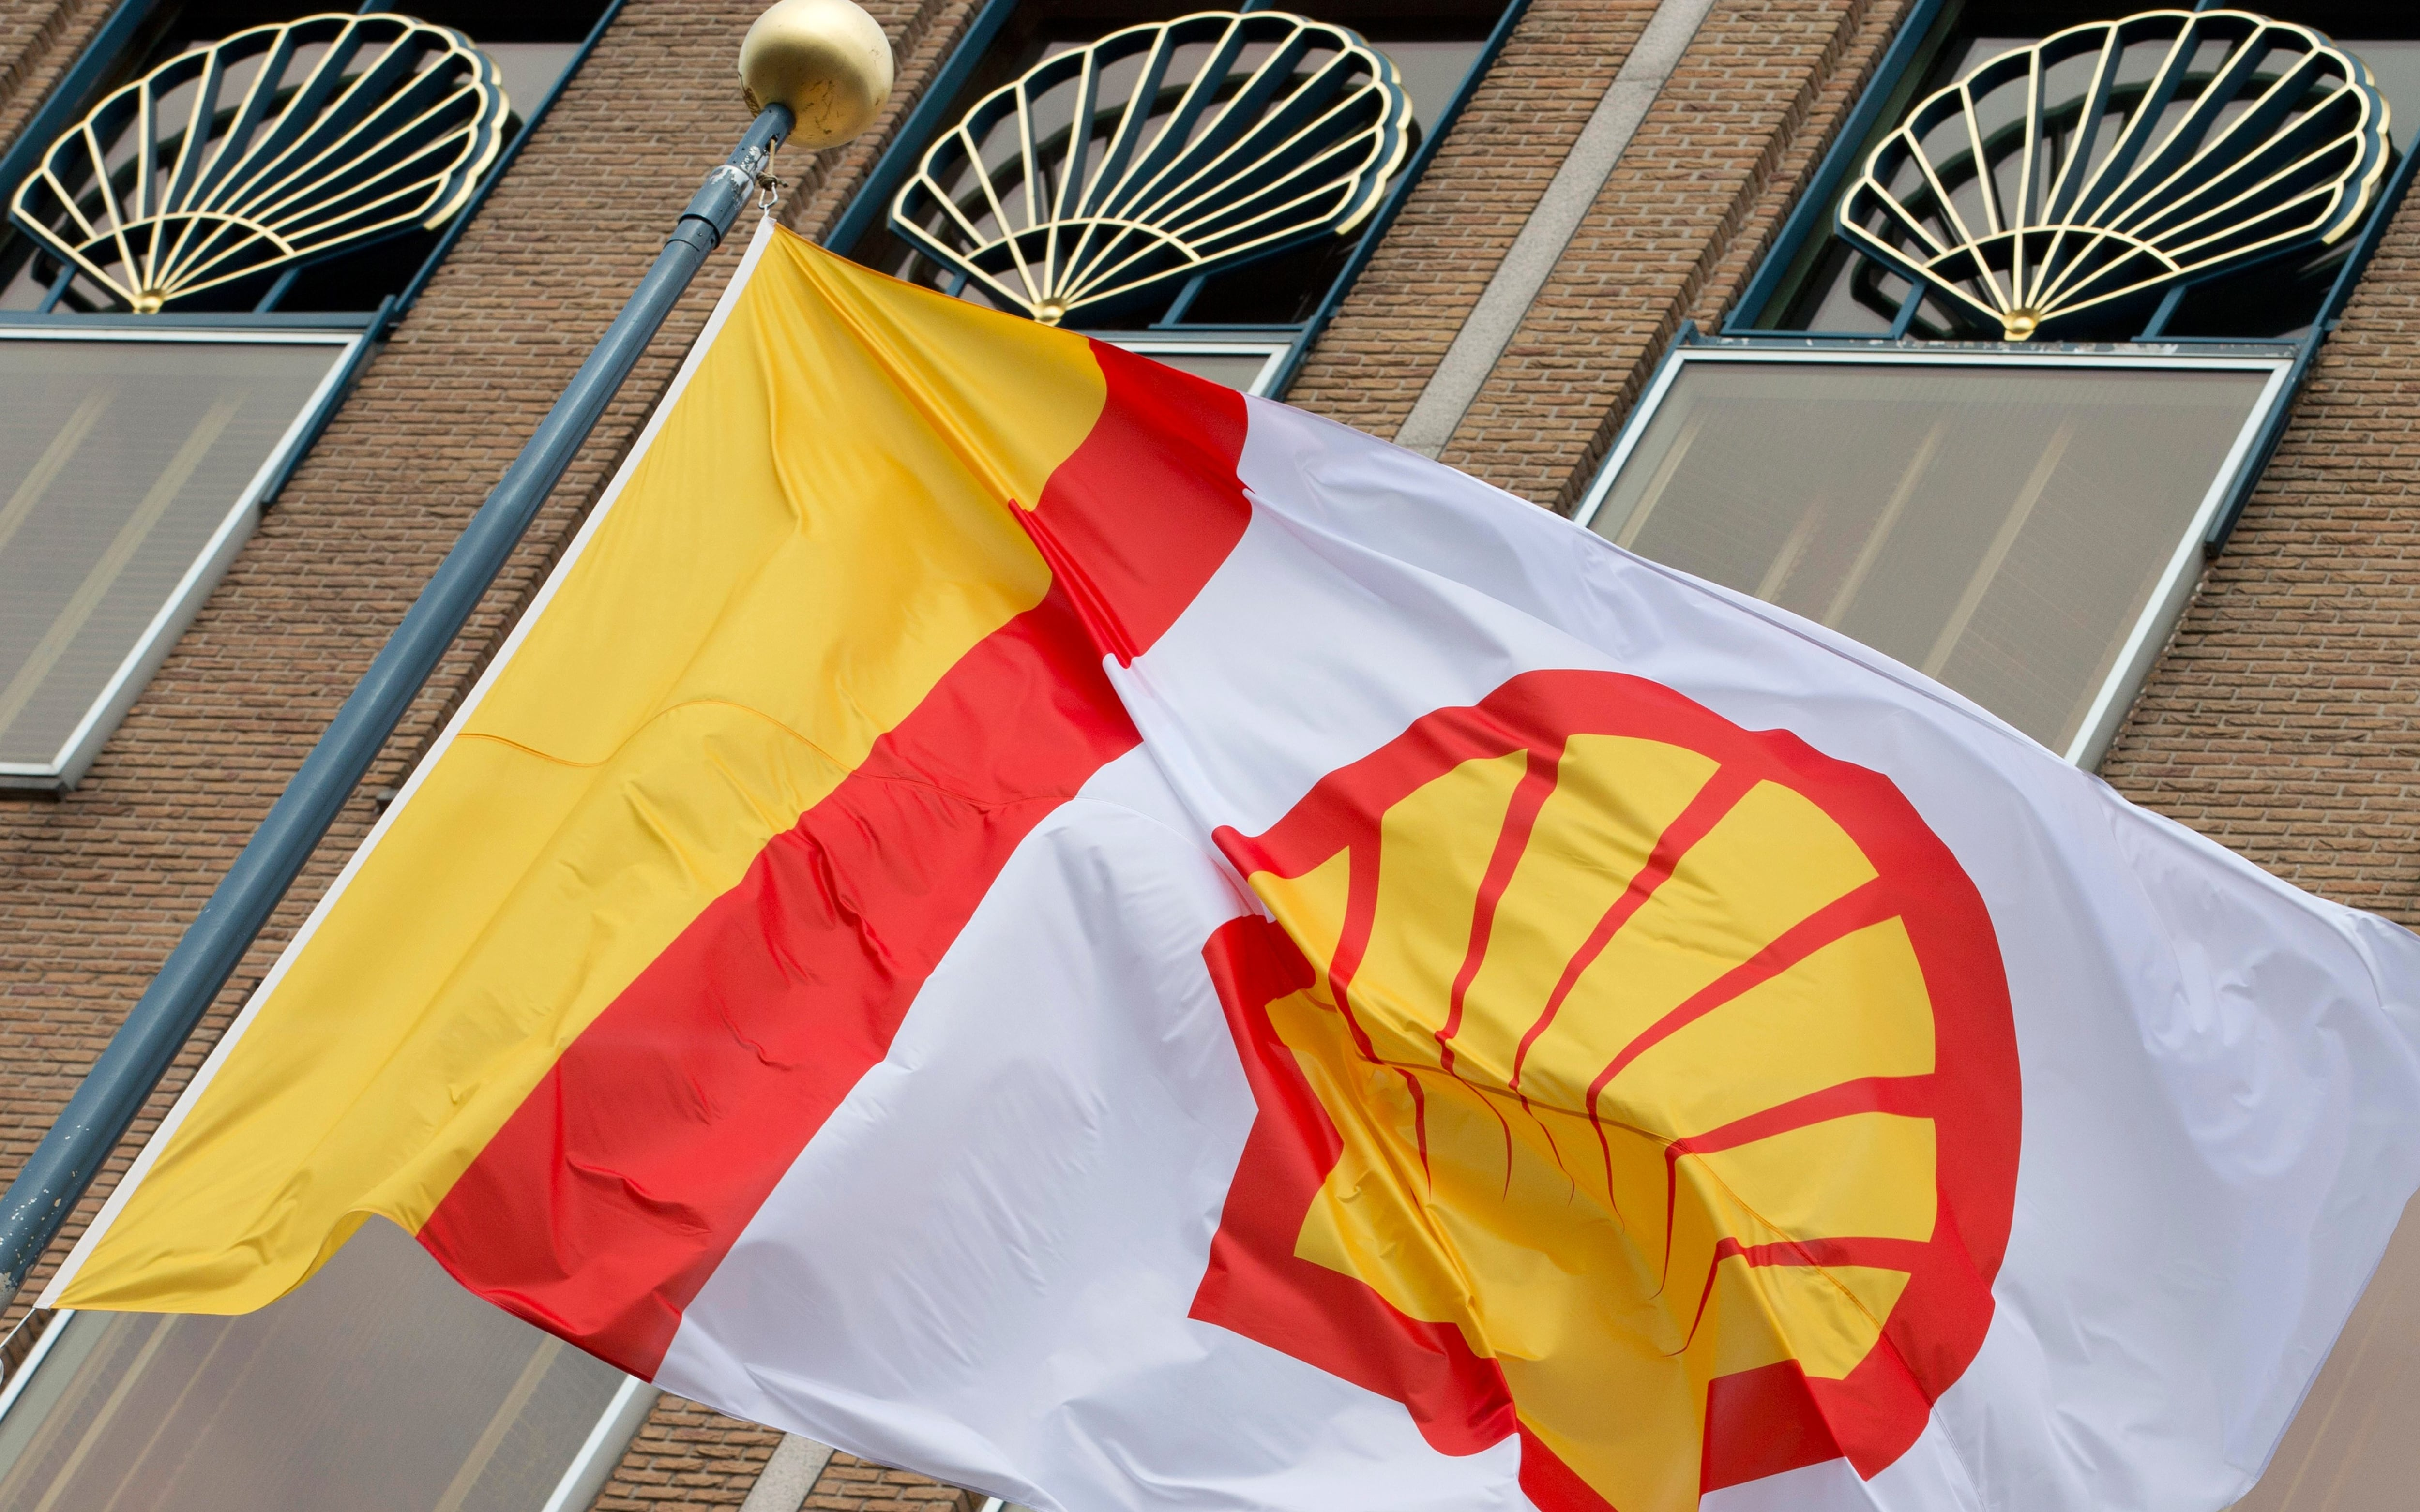 Shell braces for 'lower forever' oil amid electric vehicle boom